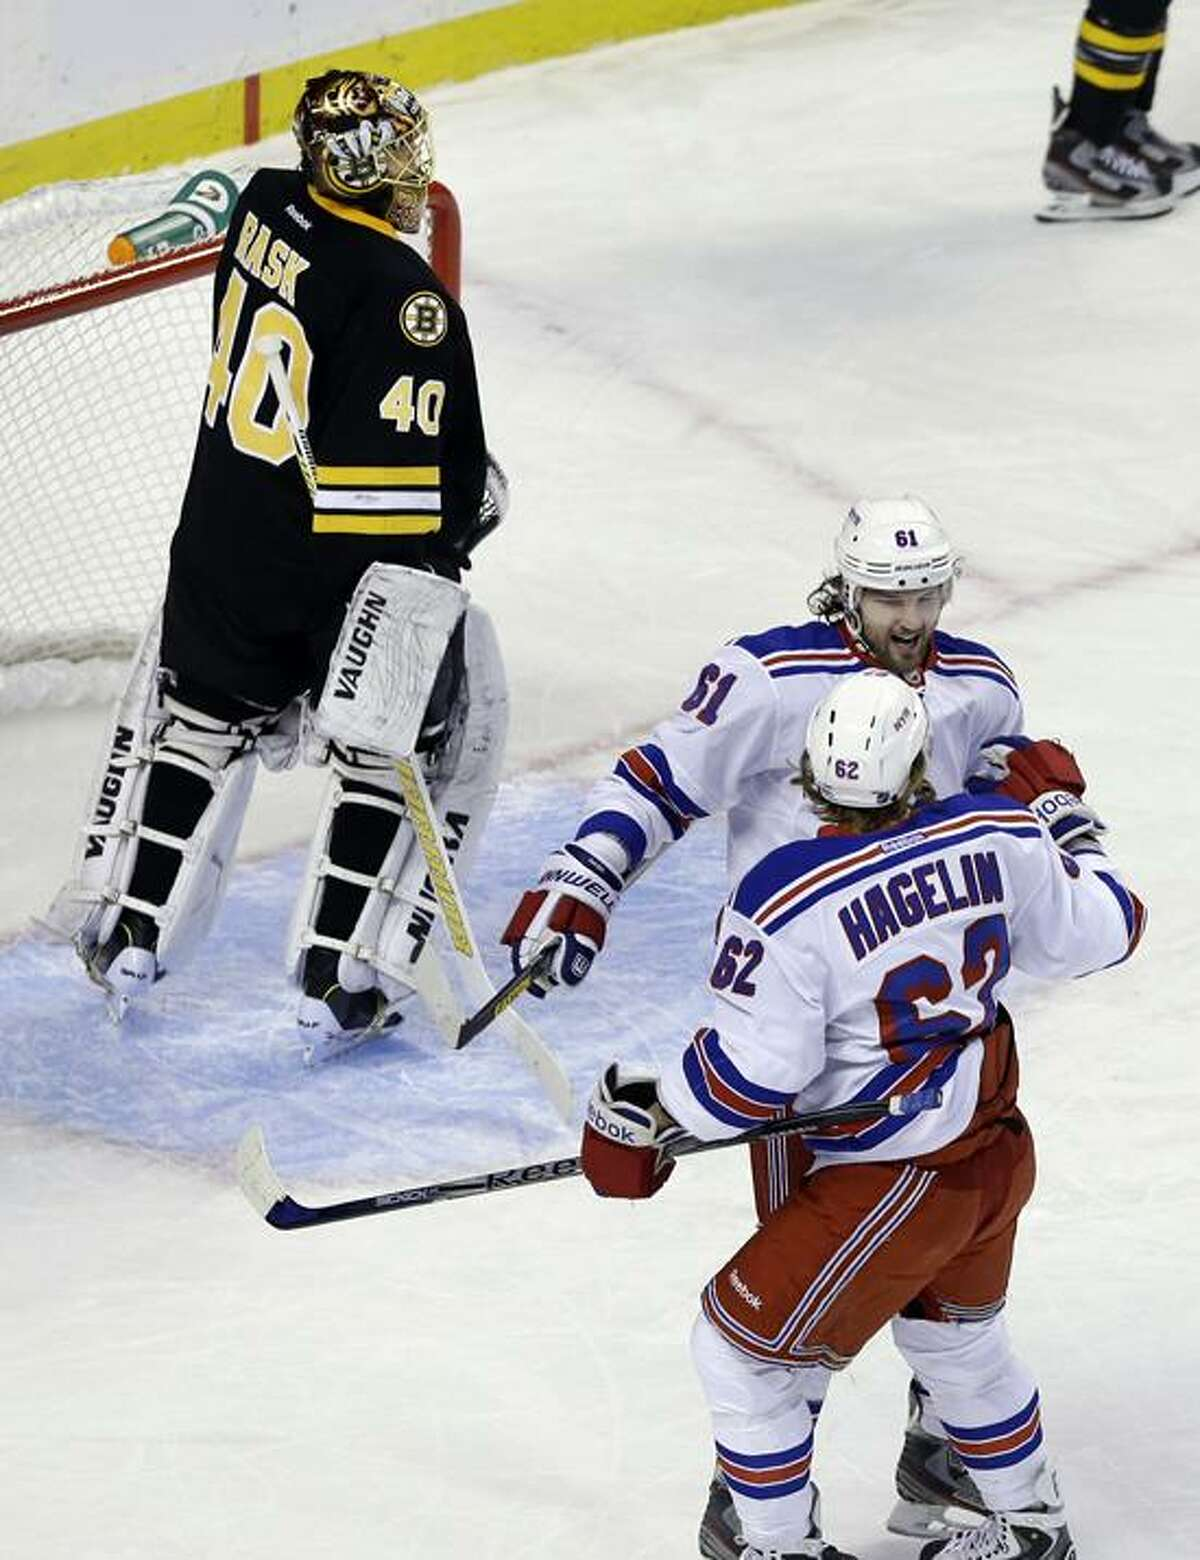 New York Rangers left wing Carl Hagelin (62) celebrates his goal with left wing Rick Nash (61) as Boston Bruins goalie Tuukka Rask (40) reacts during the first period of an NHL hockey game in Boston, Tuesday, Feb. 12, 2013. (AP Photo/Elise Amendola)